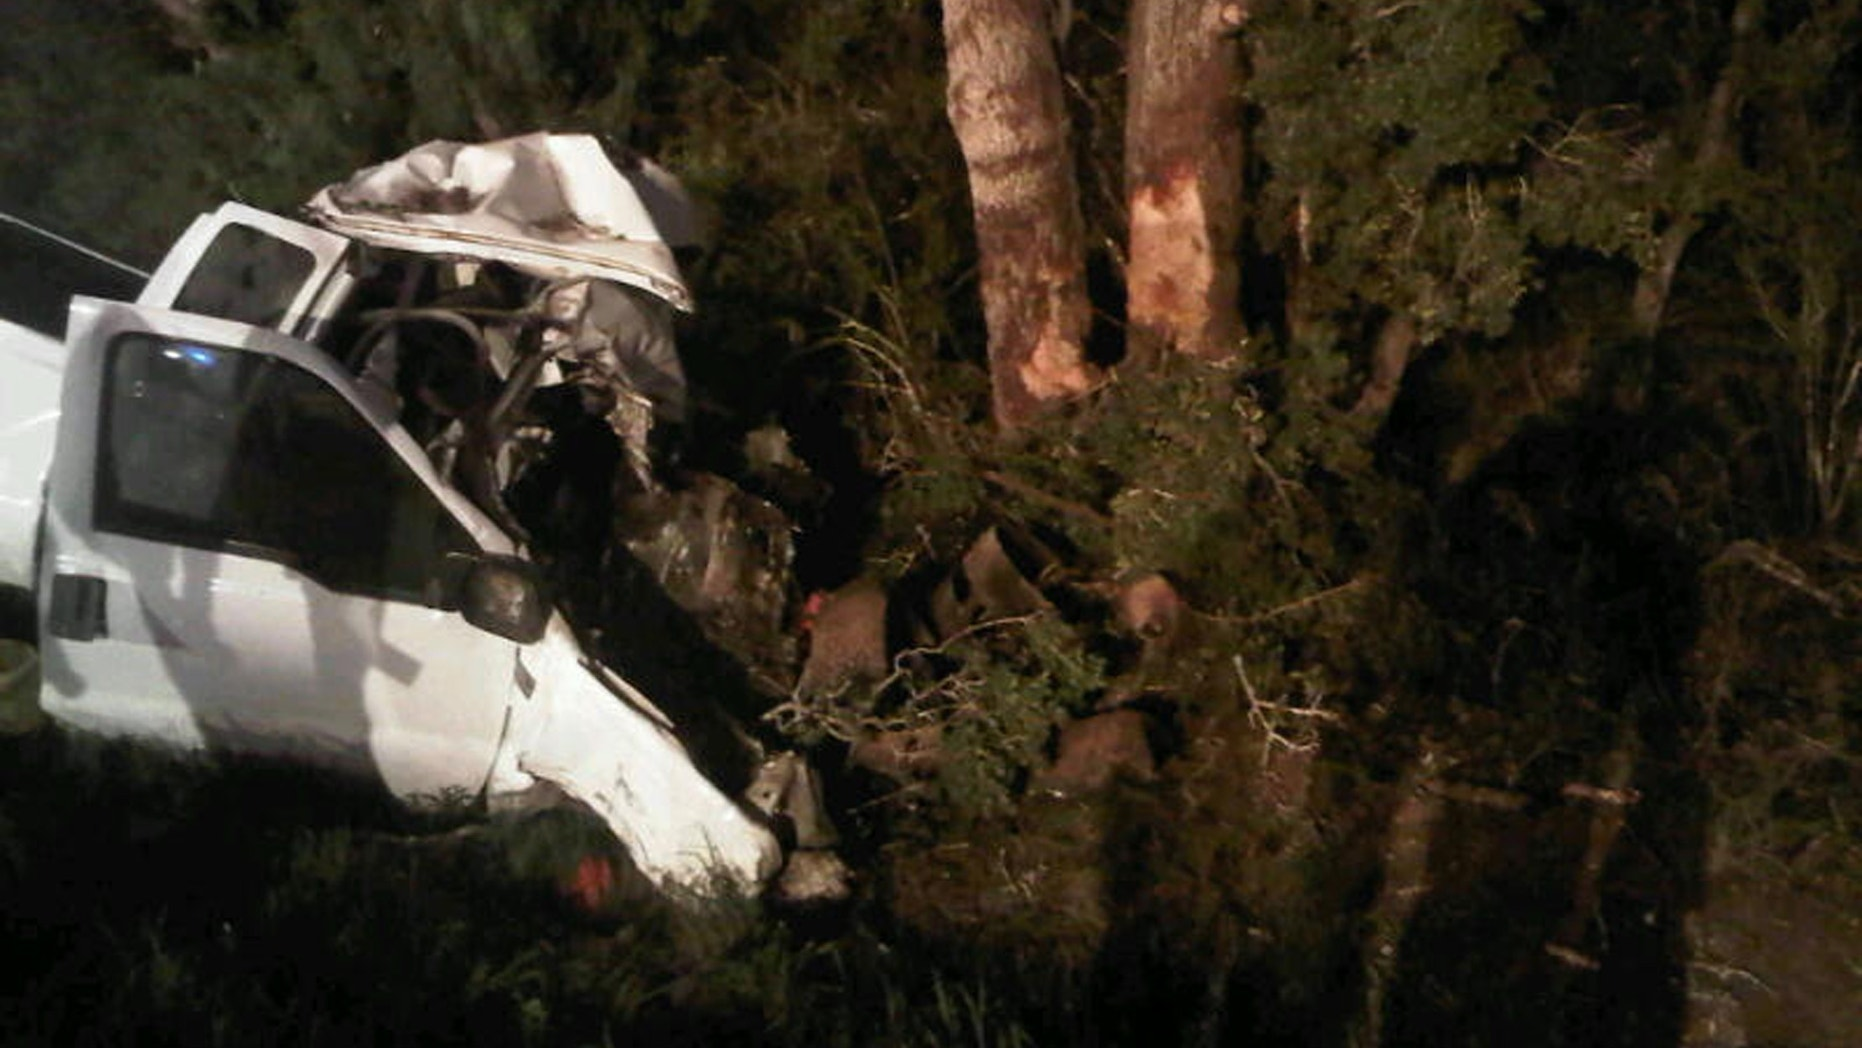 July 22, 2012: The wreckage of a pickup truck is seen after it crashed into trees in Goliad County.